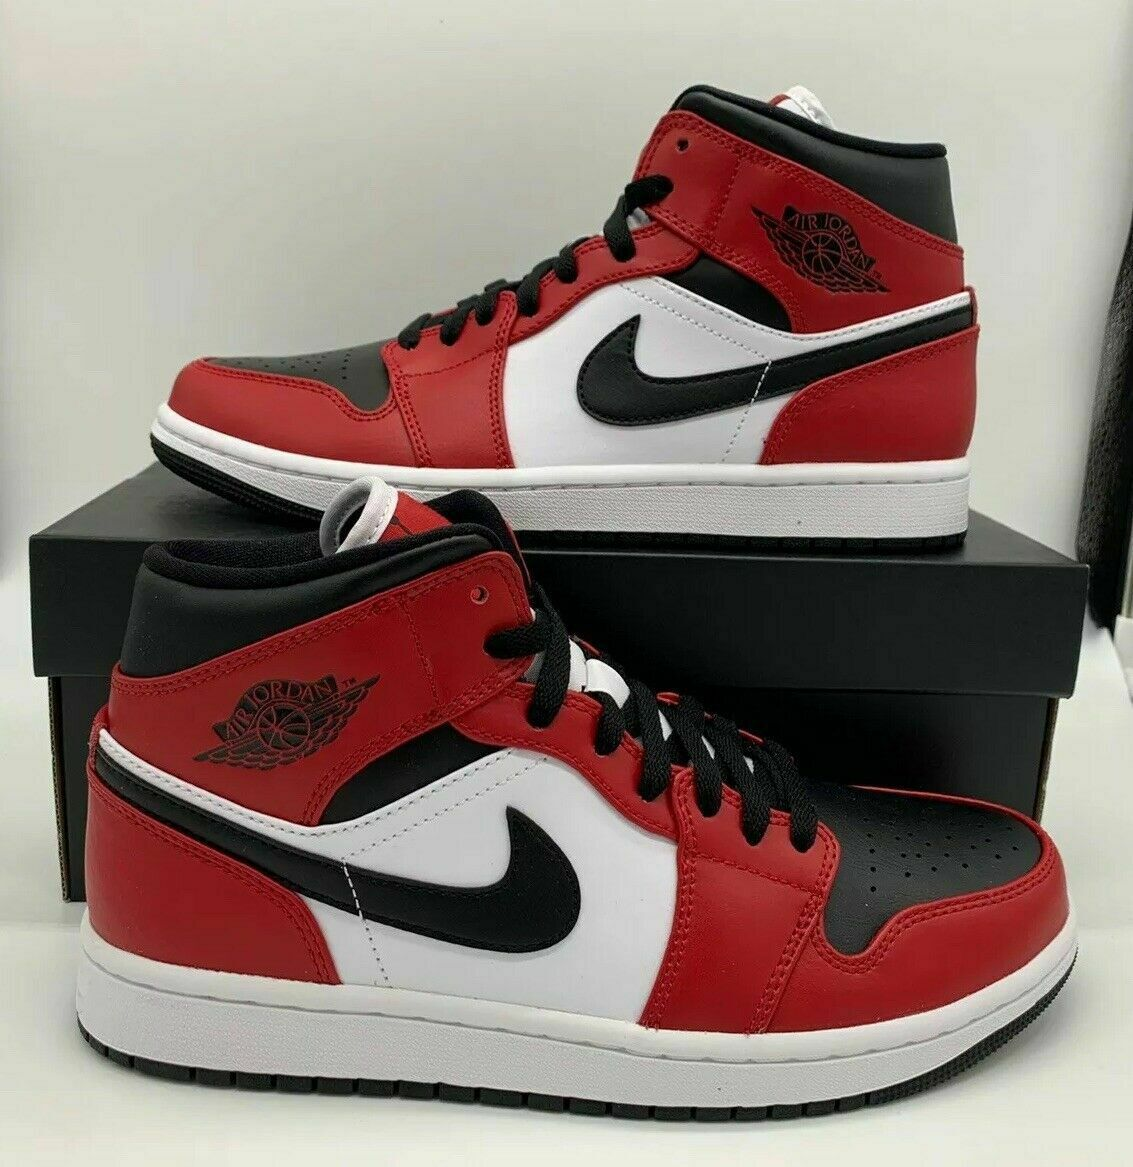 Jordan 1 Retro High Black Toe White Gym Red Size Gs 5y For Sale